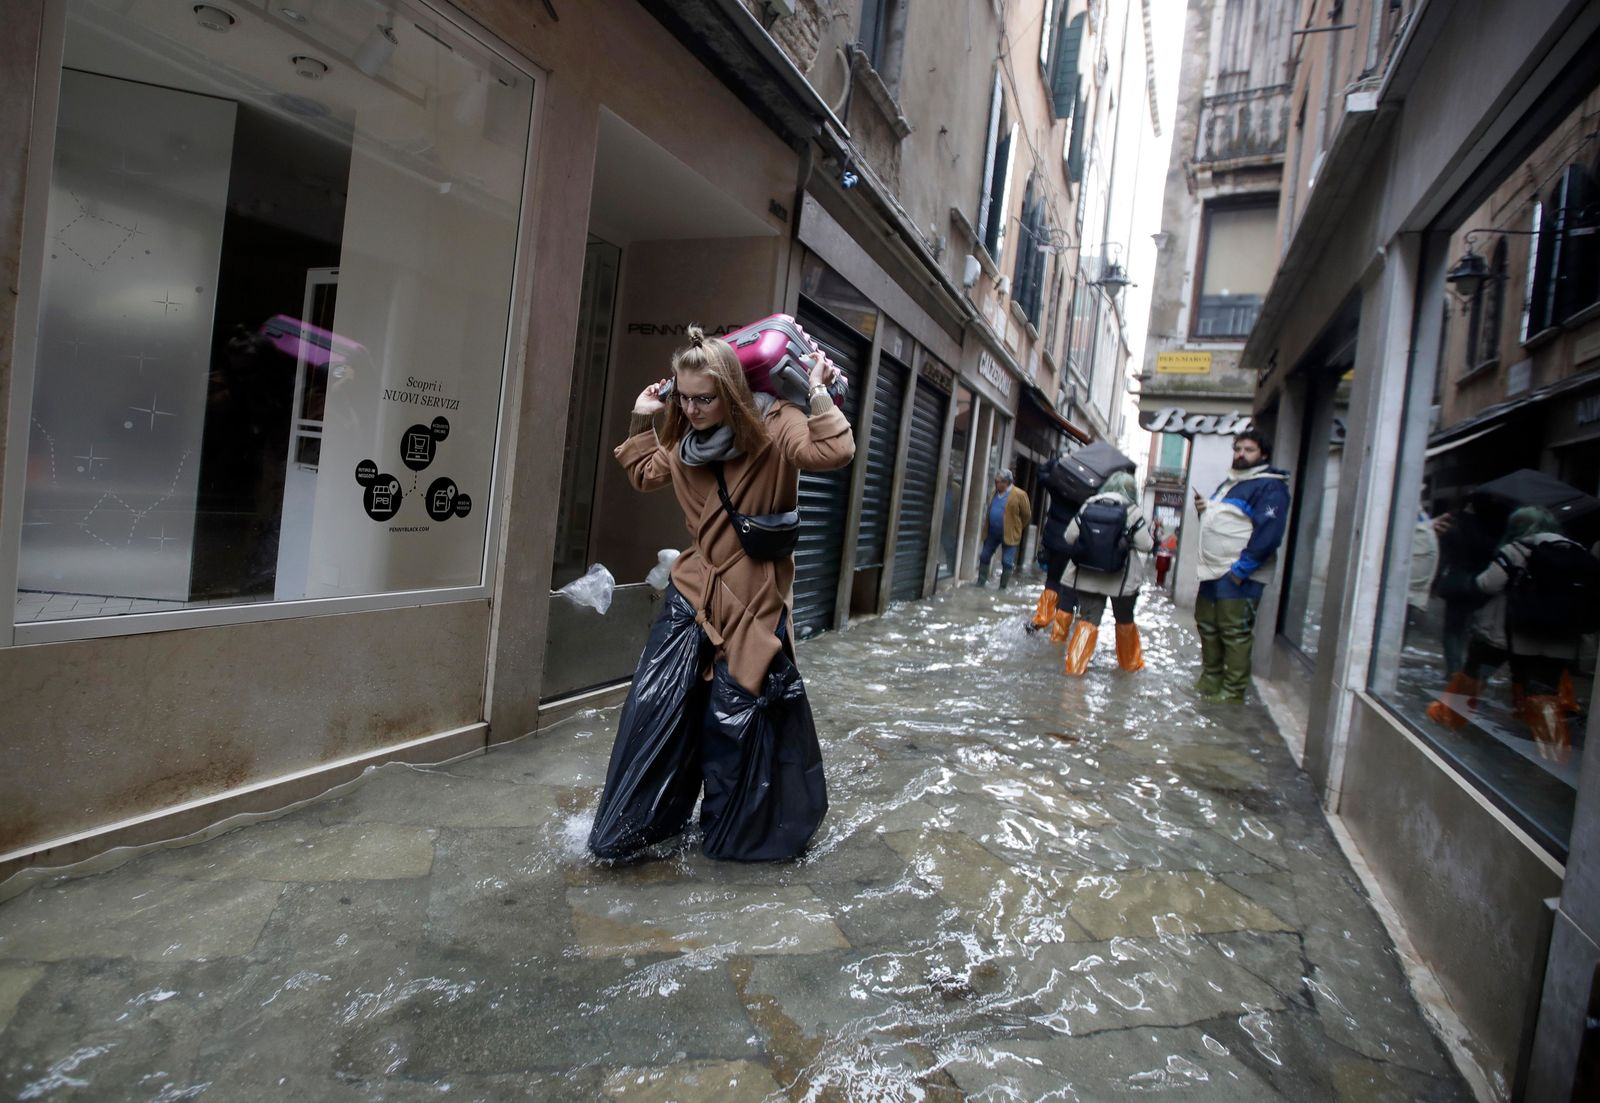 A woman wears bin bags as she carries her suitcase while wading through high water, in Venice, Wednesday, Nov. 13, 2019. (AP Photo/Luca Bruno)